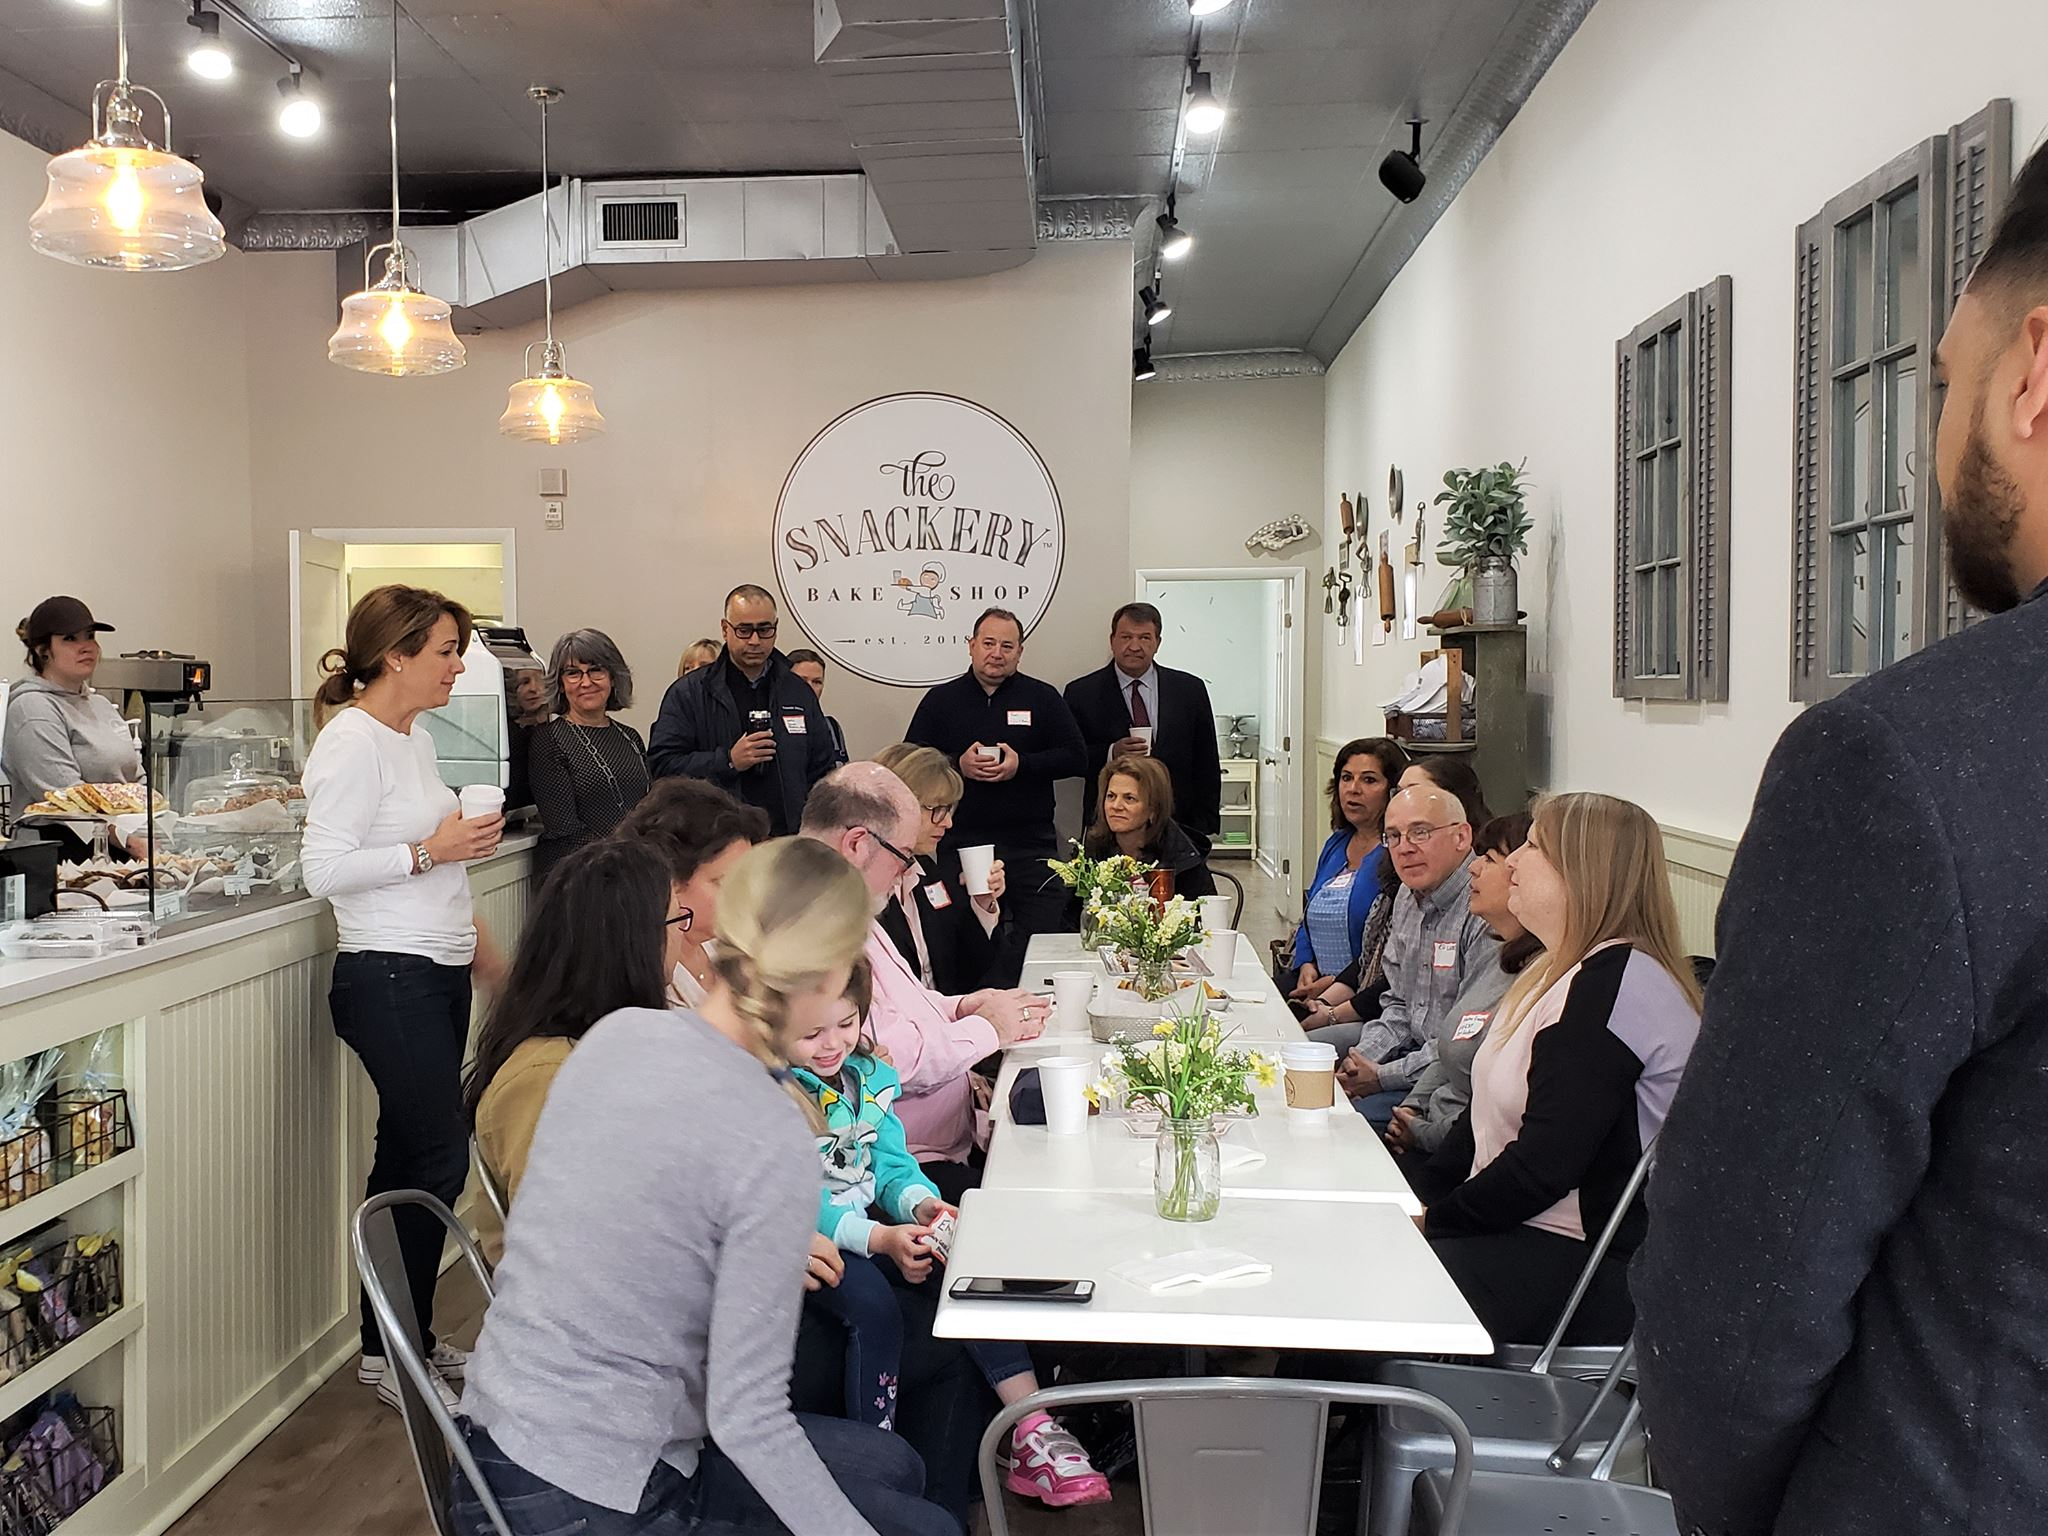 Thank you Snackery for hosting our April meeting - Snackery - 1985 Palmer Ave., 8:30a